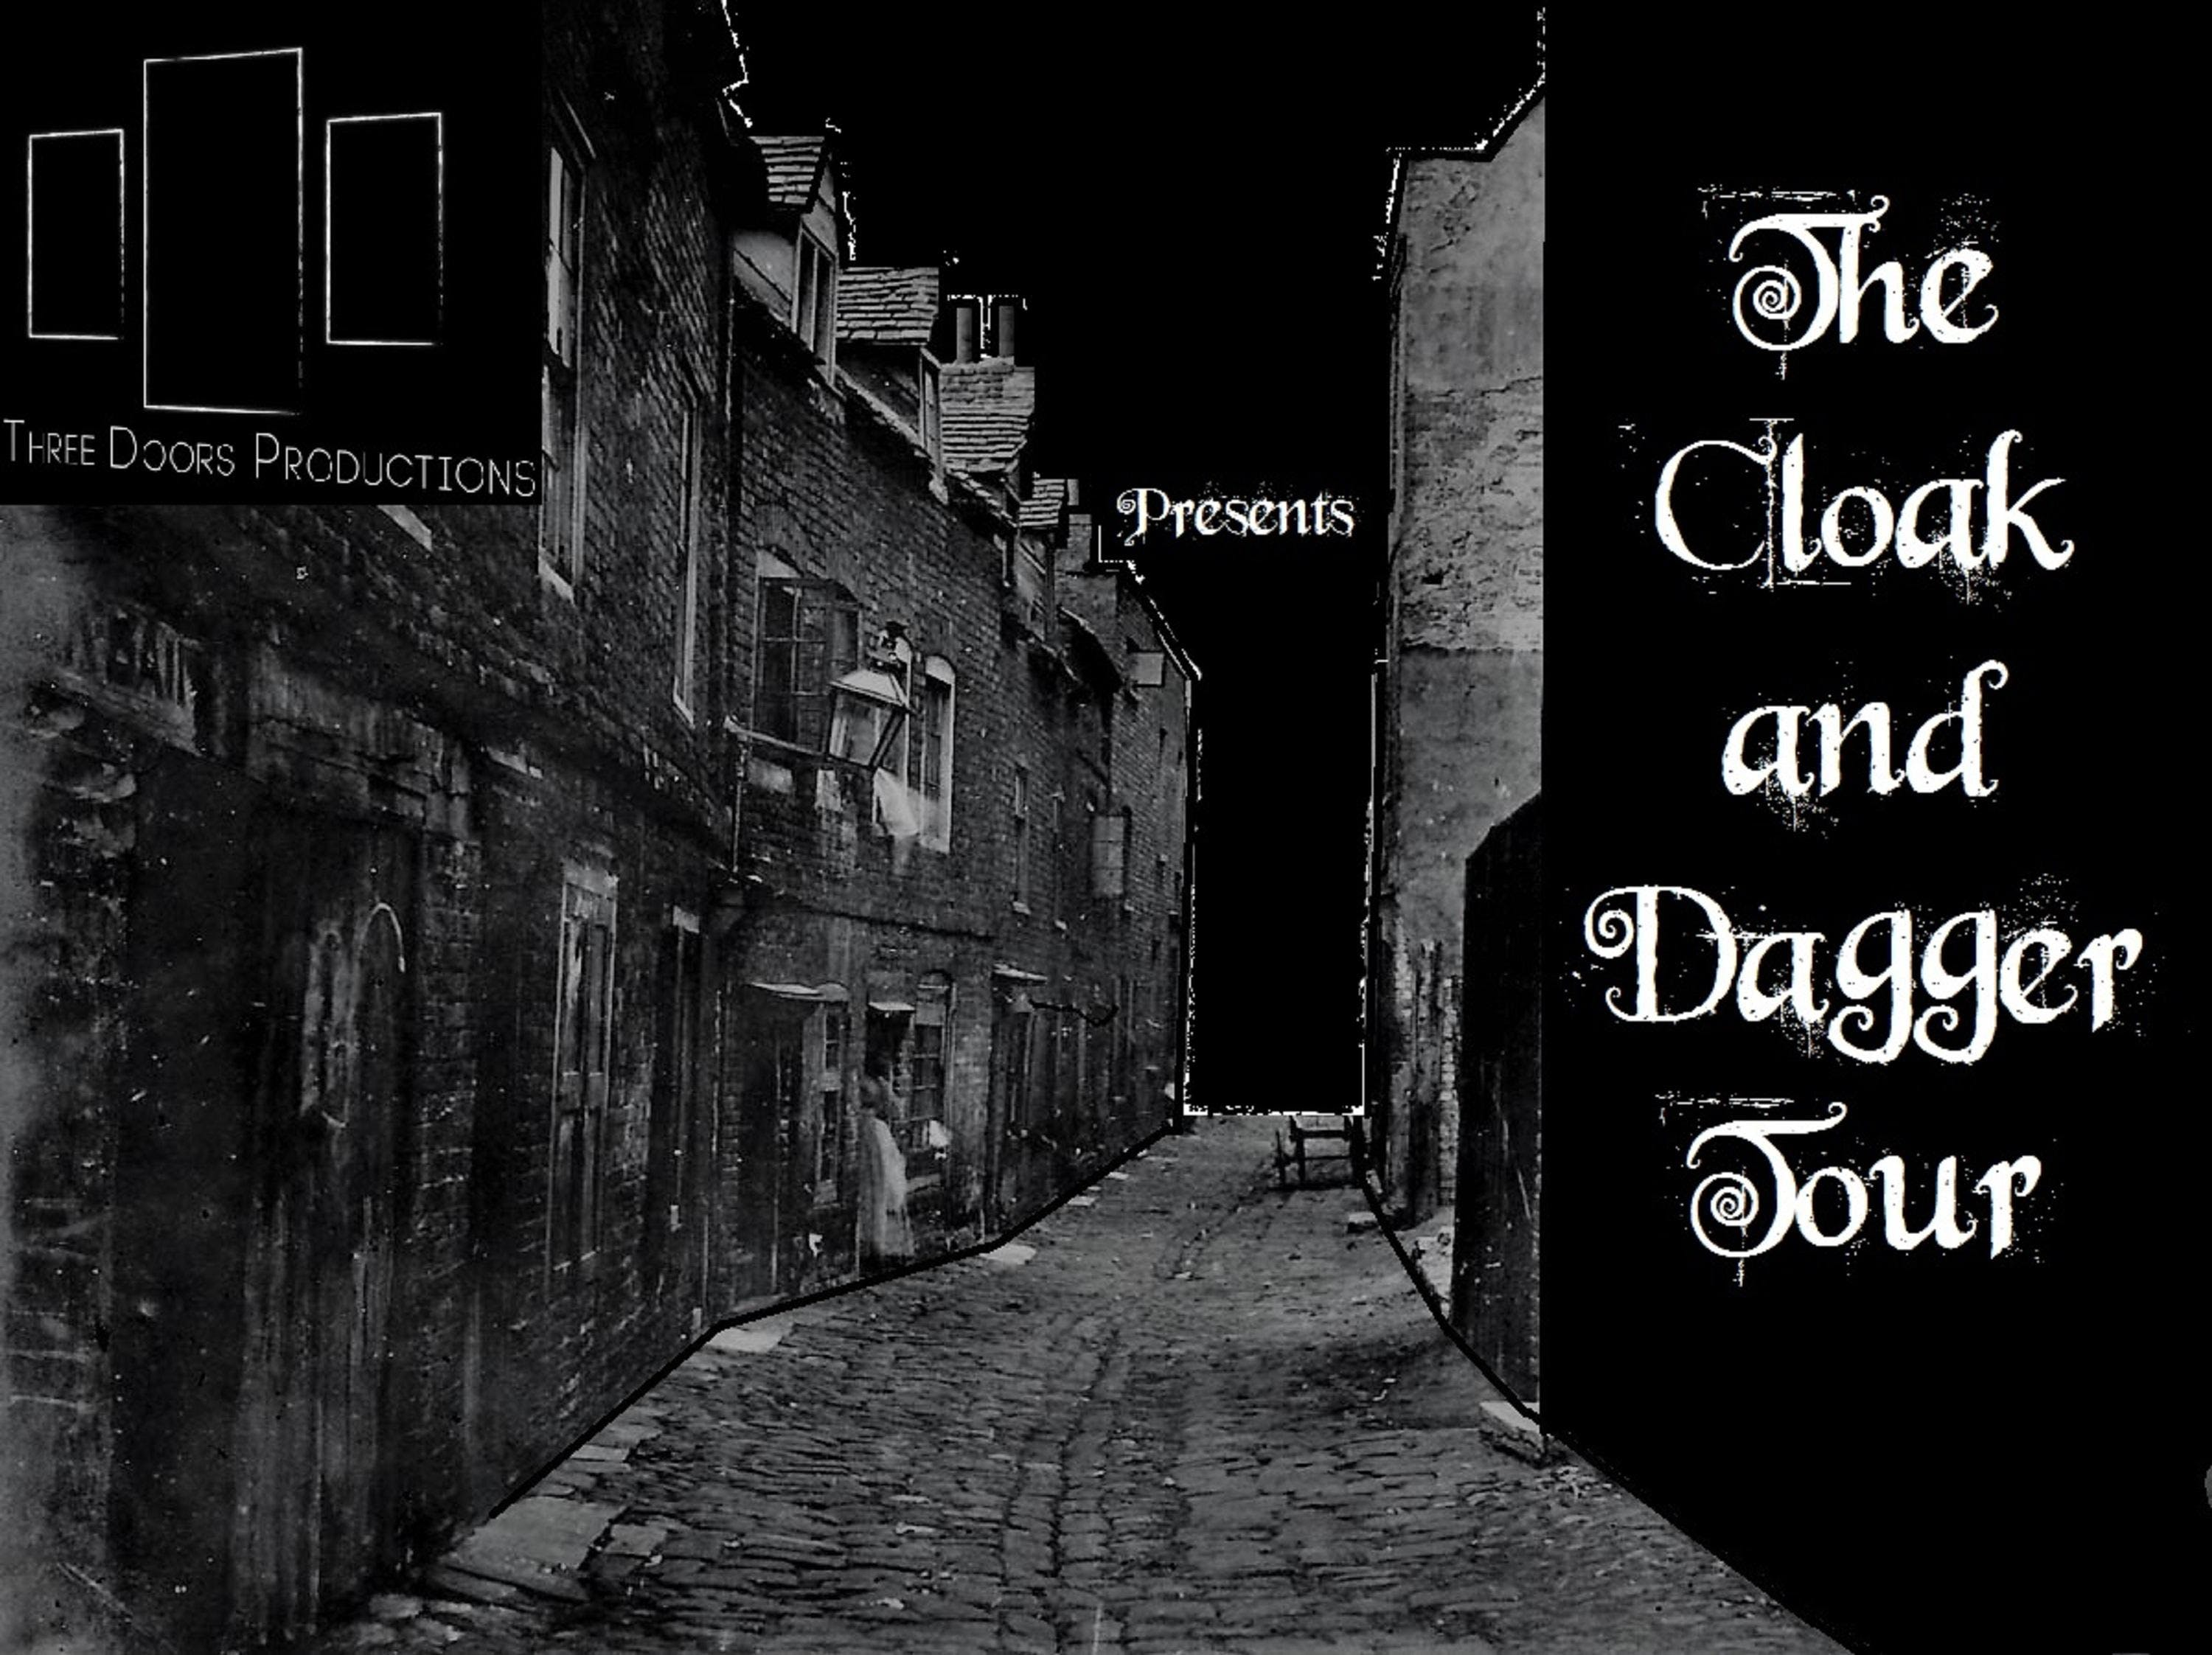 The Cloak and Dagger Tour